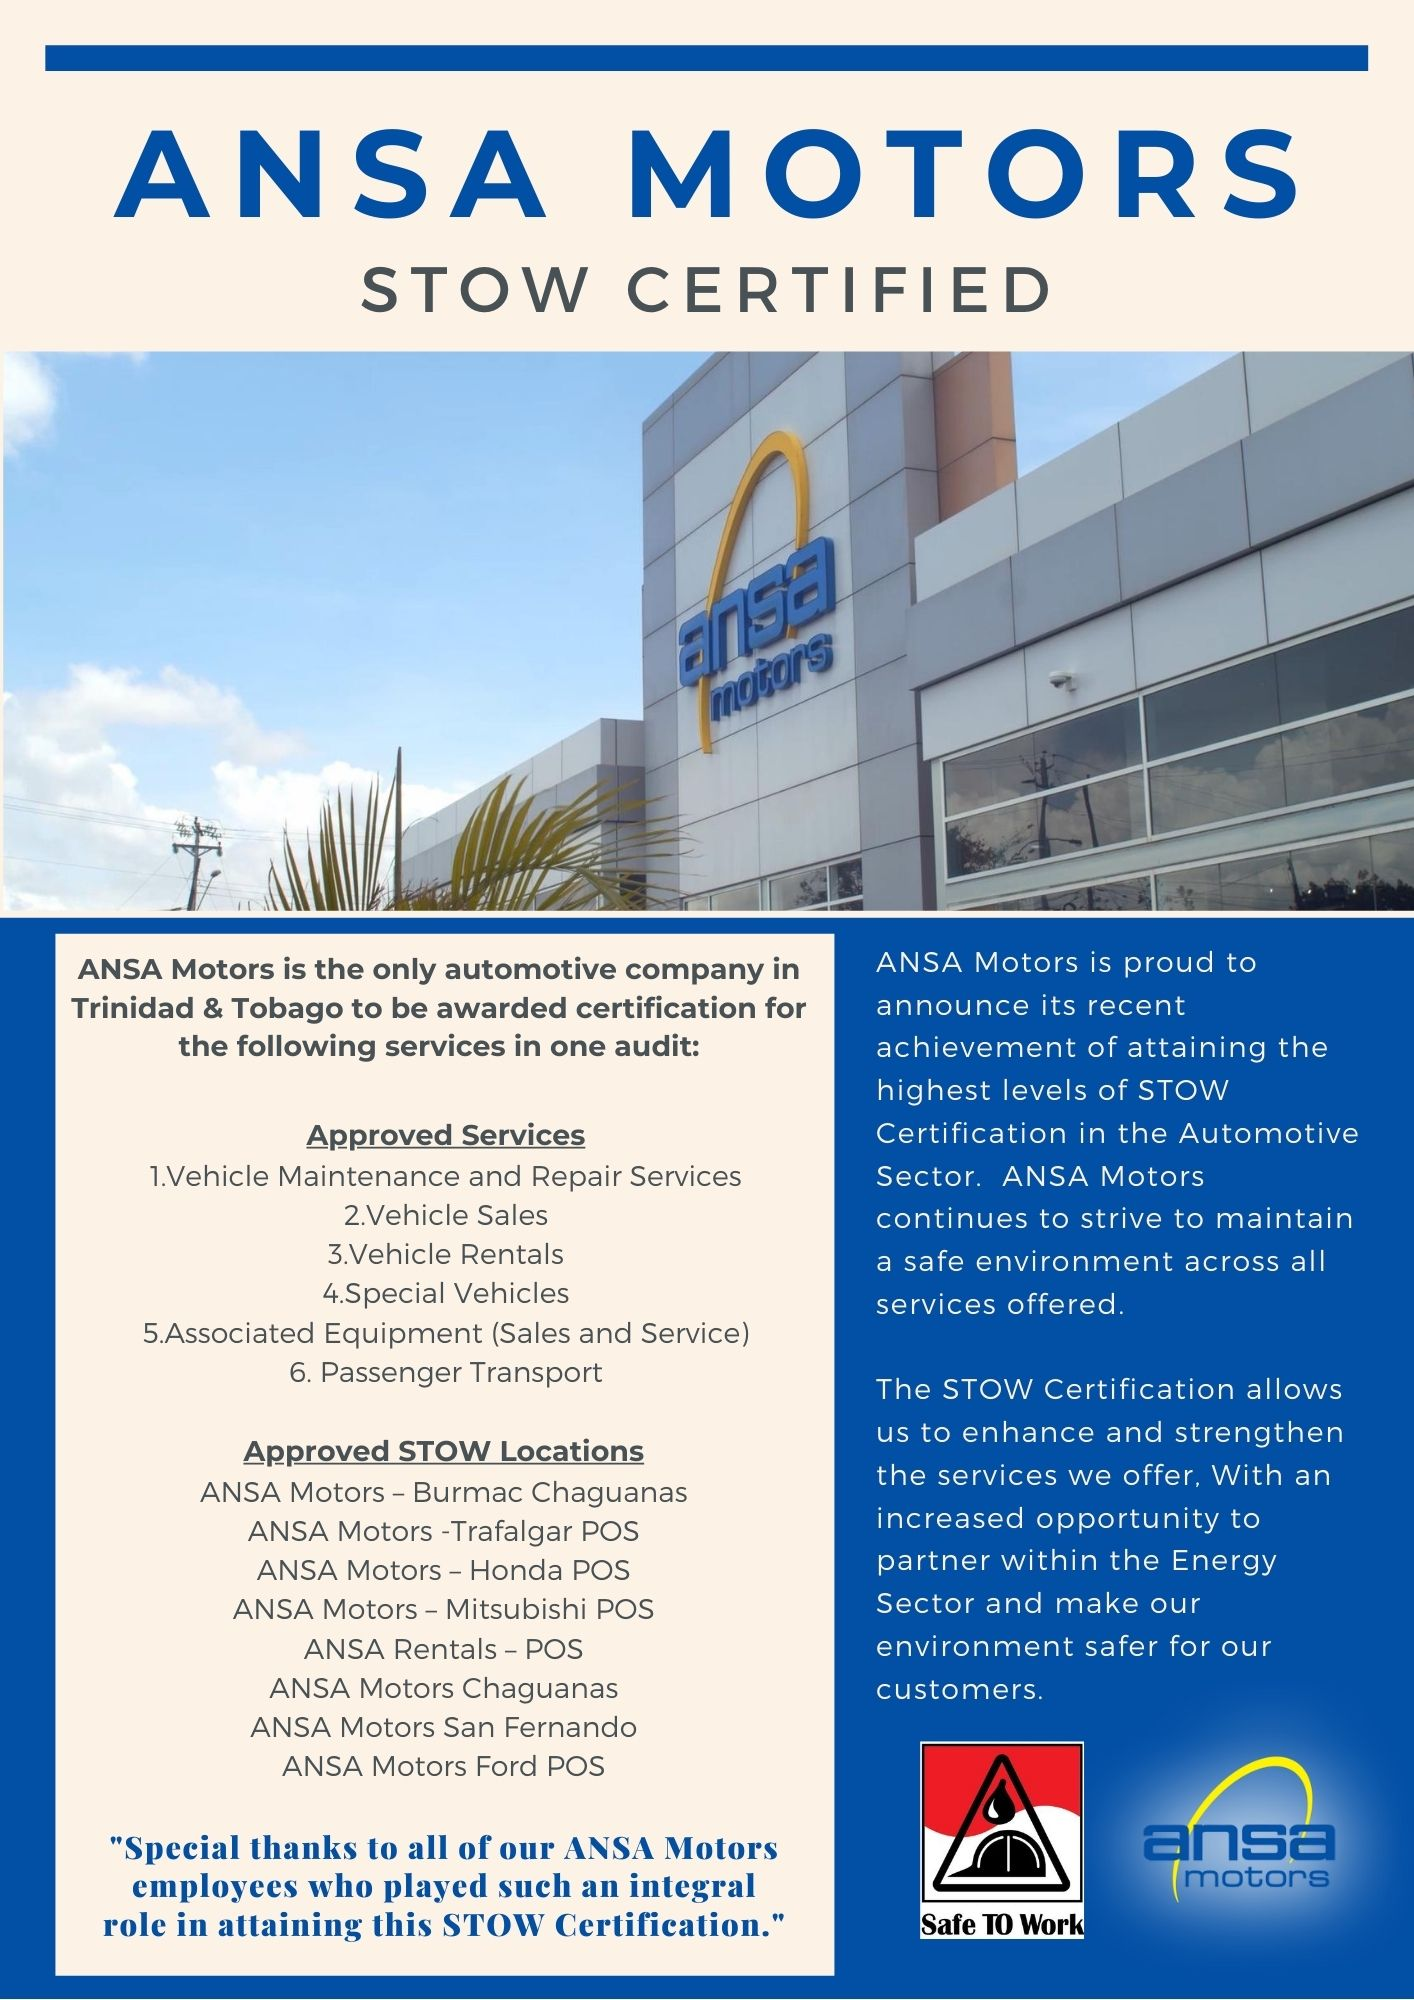 ANSA Motors STOW Certified